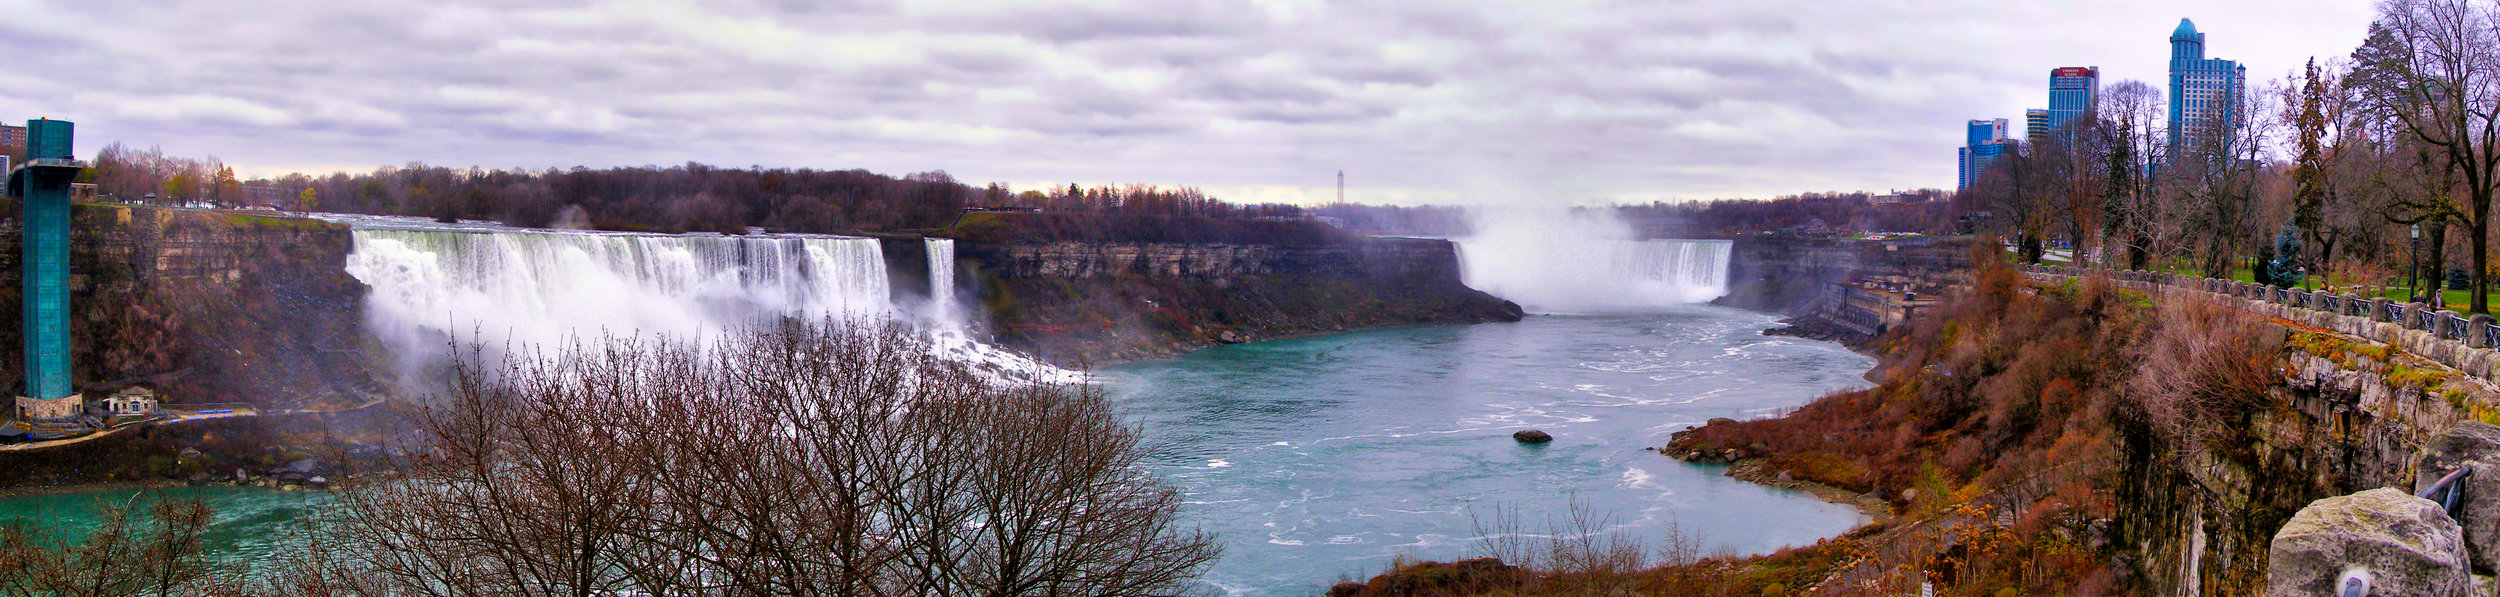 Panoramic image of Niagara Falls, 2006